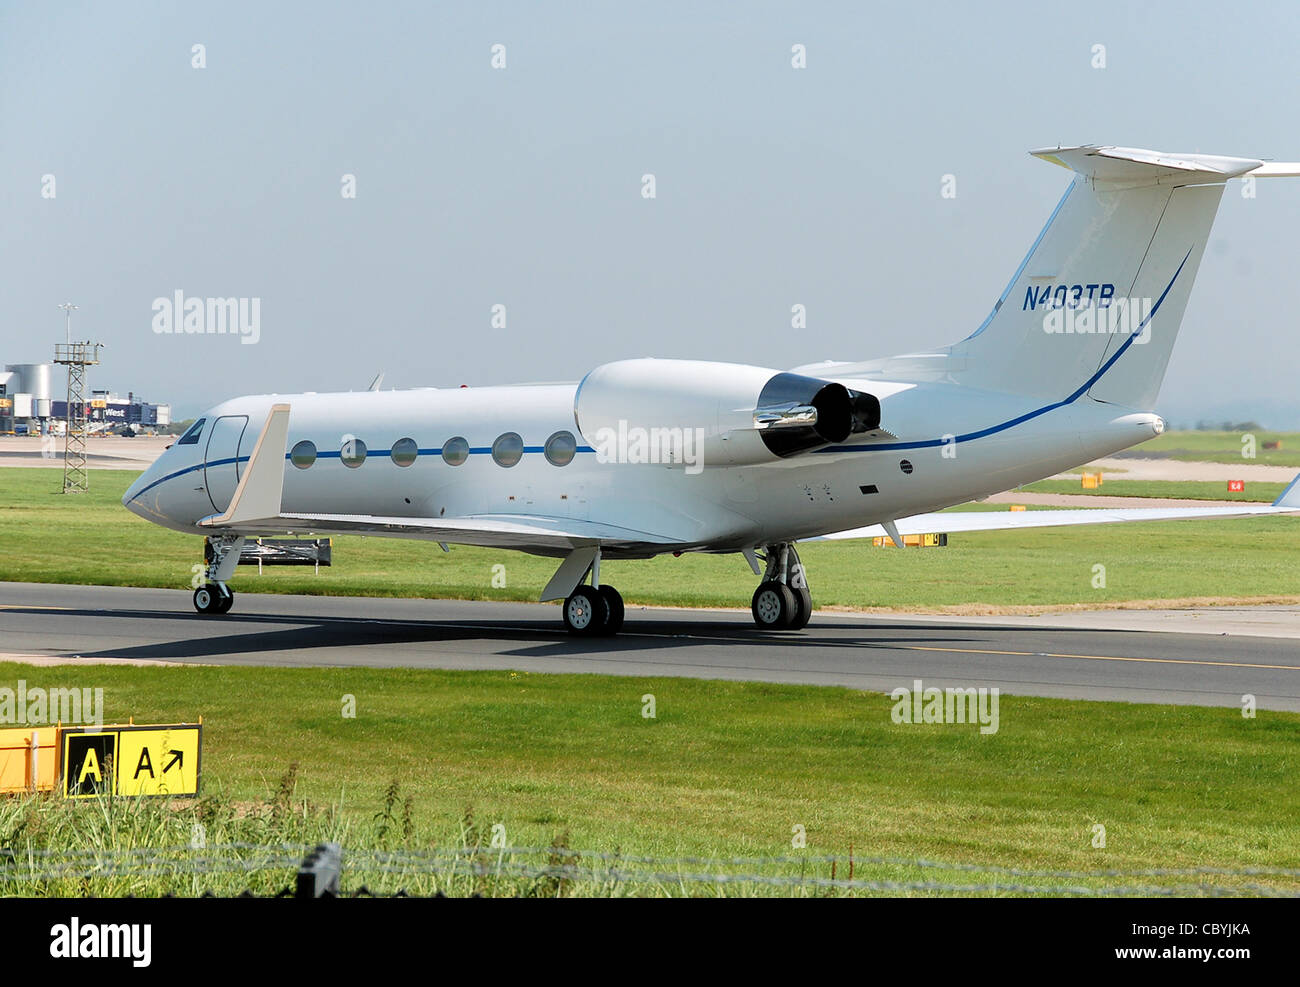 Gulfstream G-IV business jet (N403TB) taxis past the Aviation Viewing Park, after landing at Manchester Airport, - Stock Image